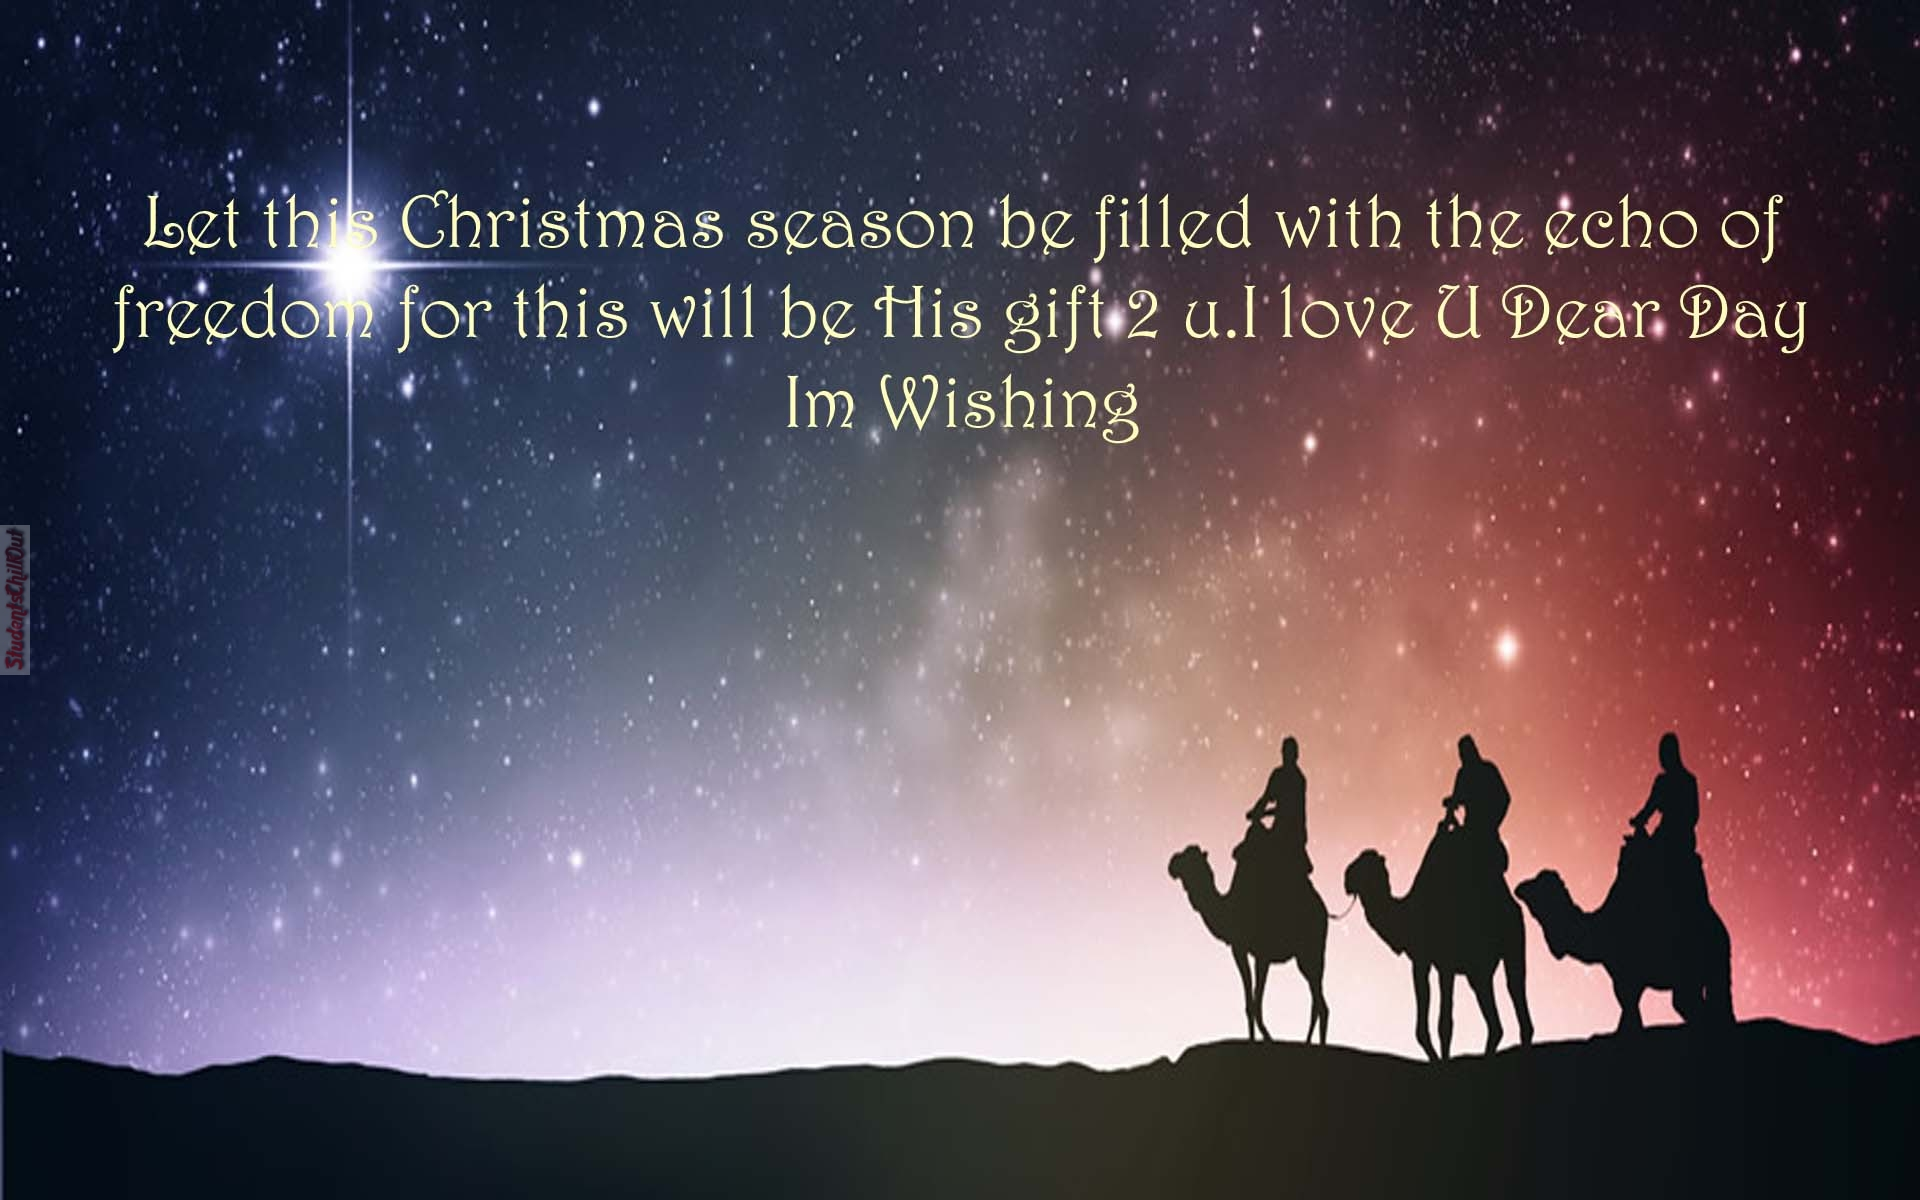 Best famous christmas card images studentschillout christmas card images m4hsunfo